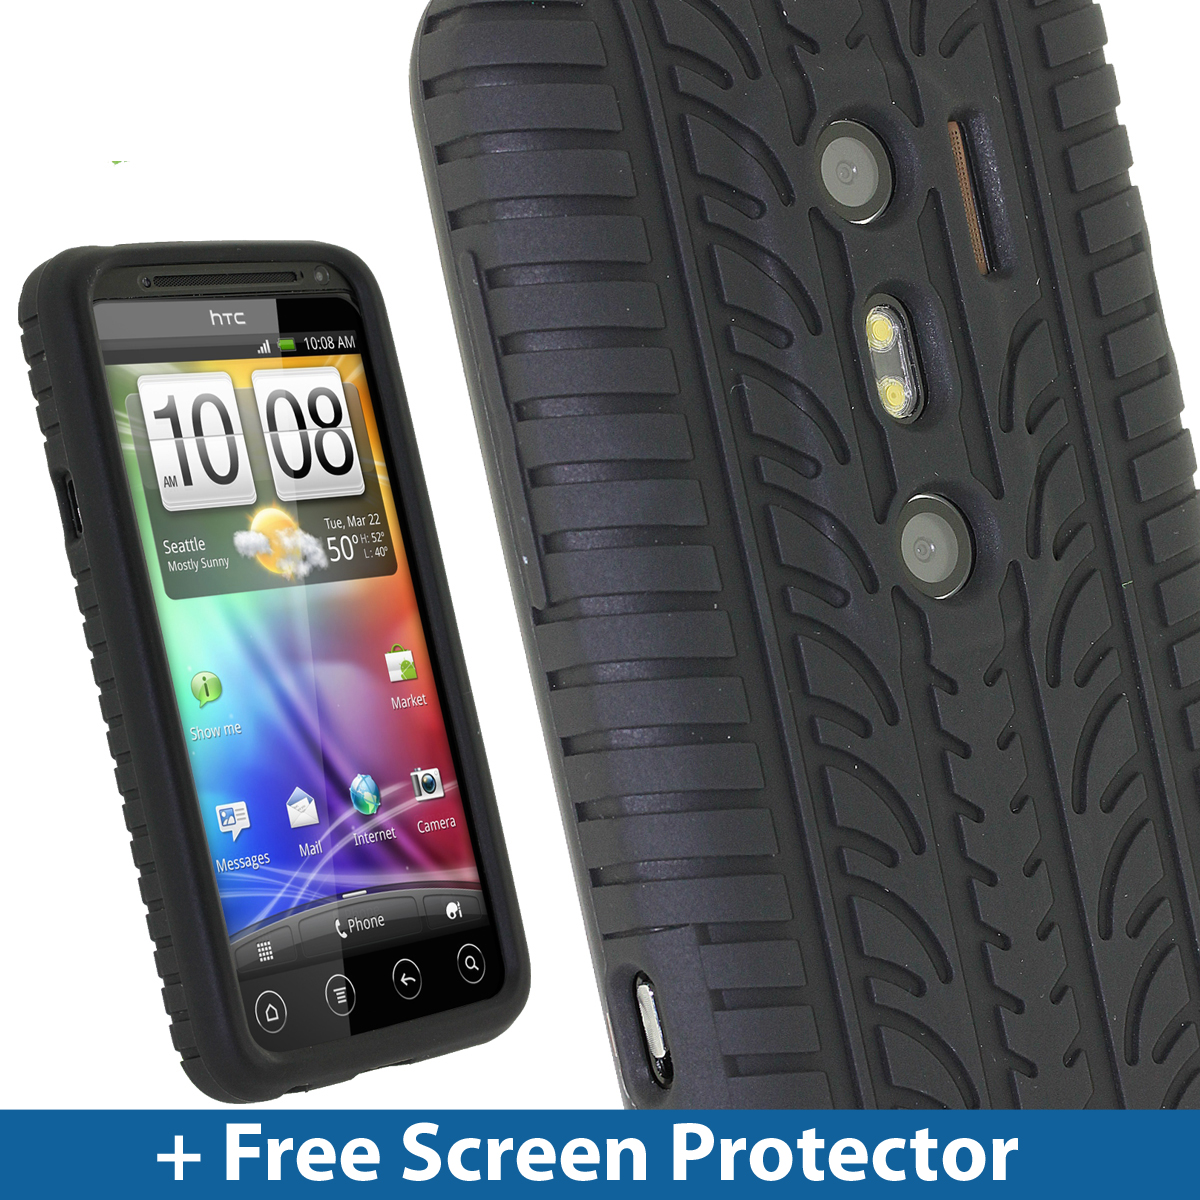 Black Silicone Tyre Skin Case Cover for HTC Evo 3D Android Smartphone Mobile Enlarged Preview